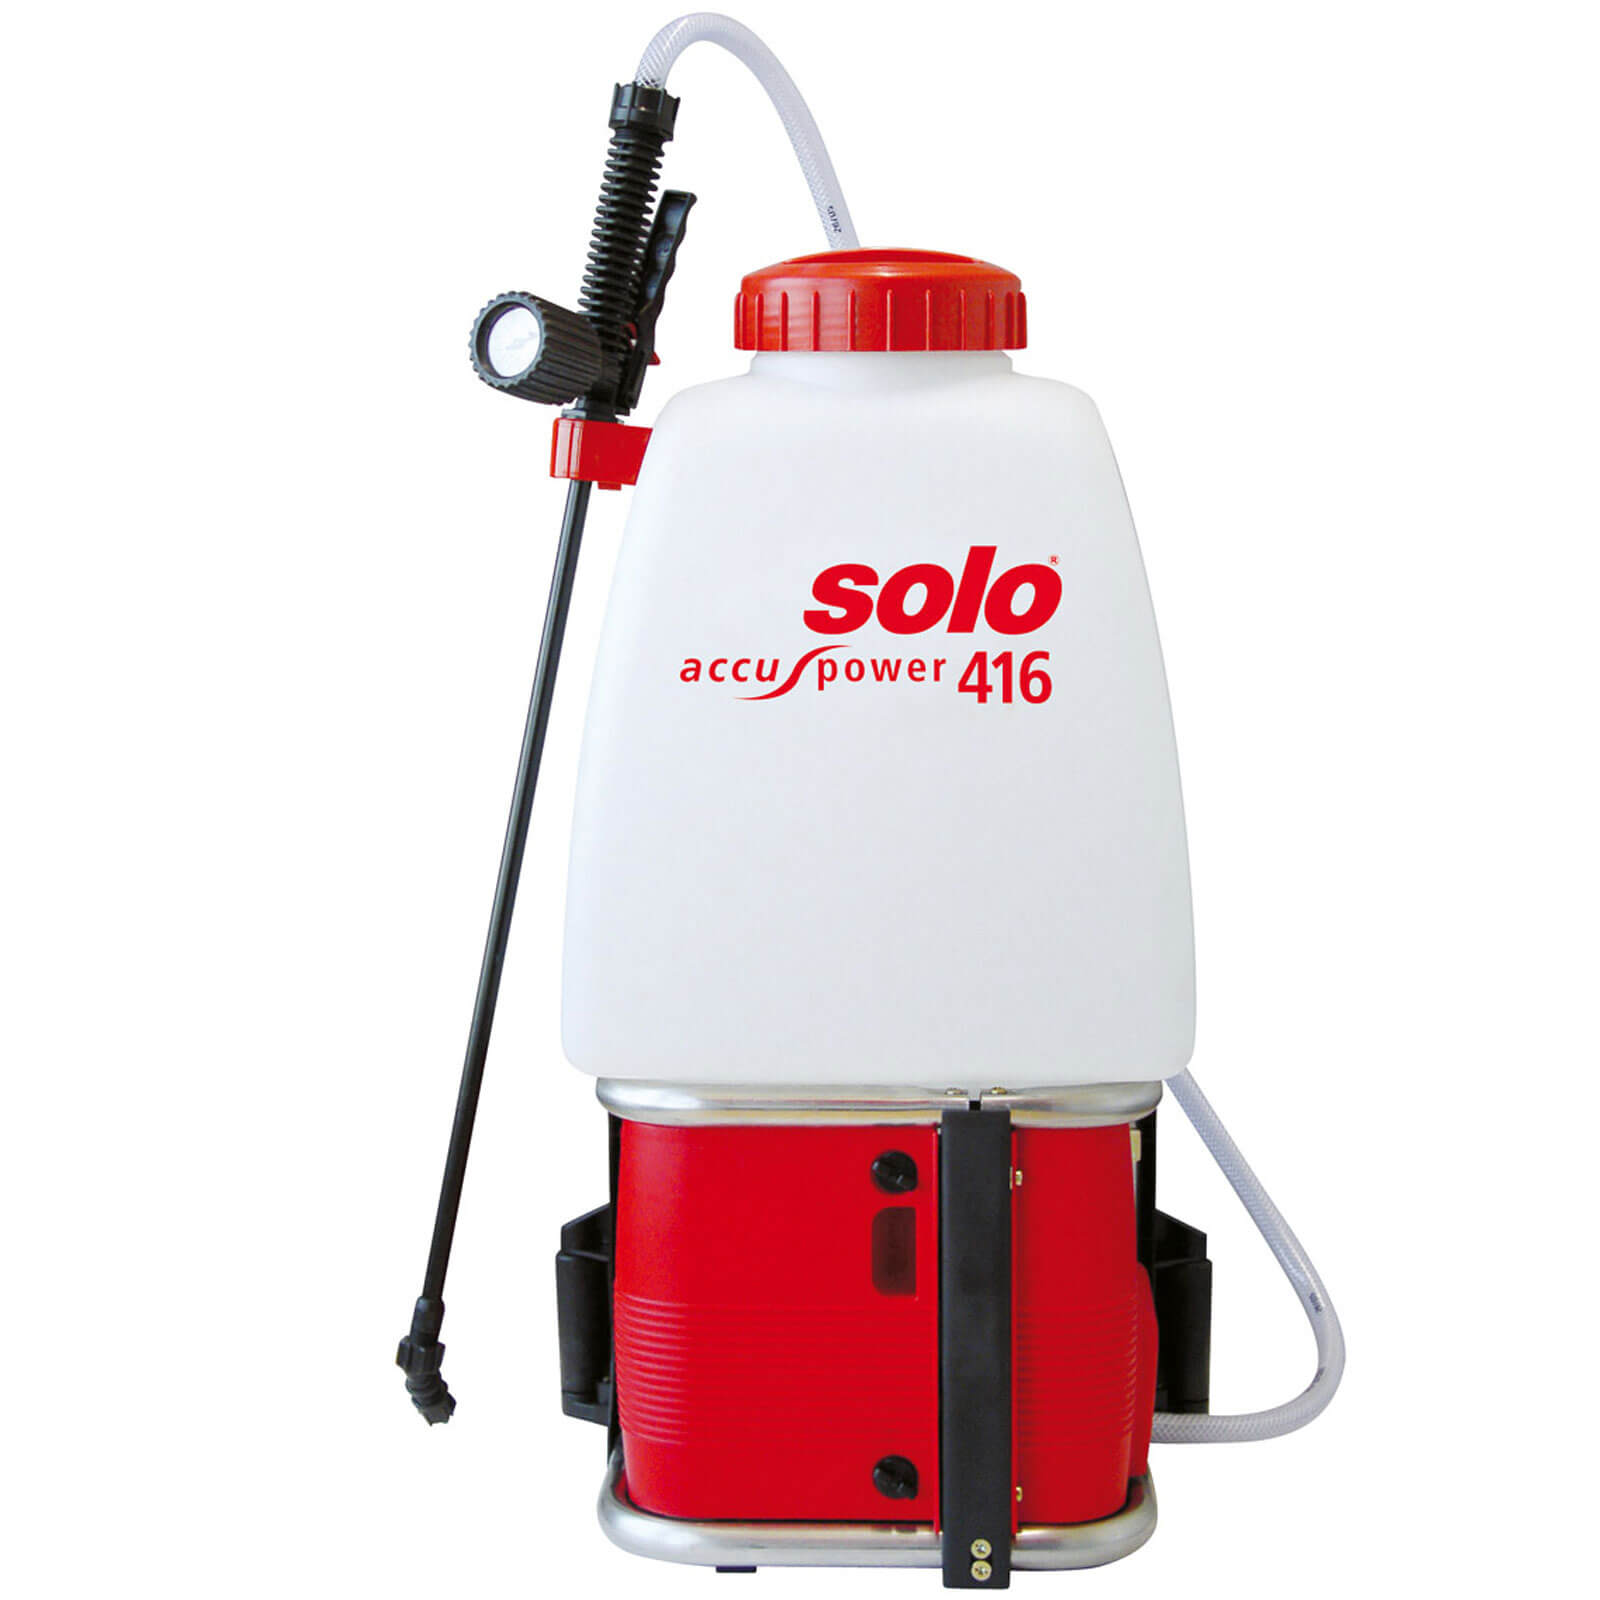 Image of Solo 416 Backpack Rechargeable Chemical & Water Pressure Sprayer 20l